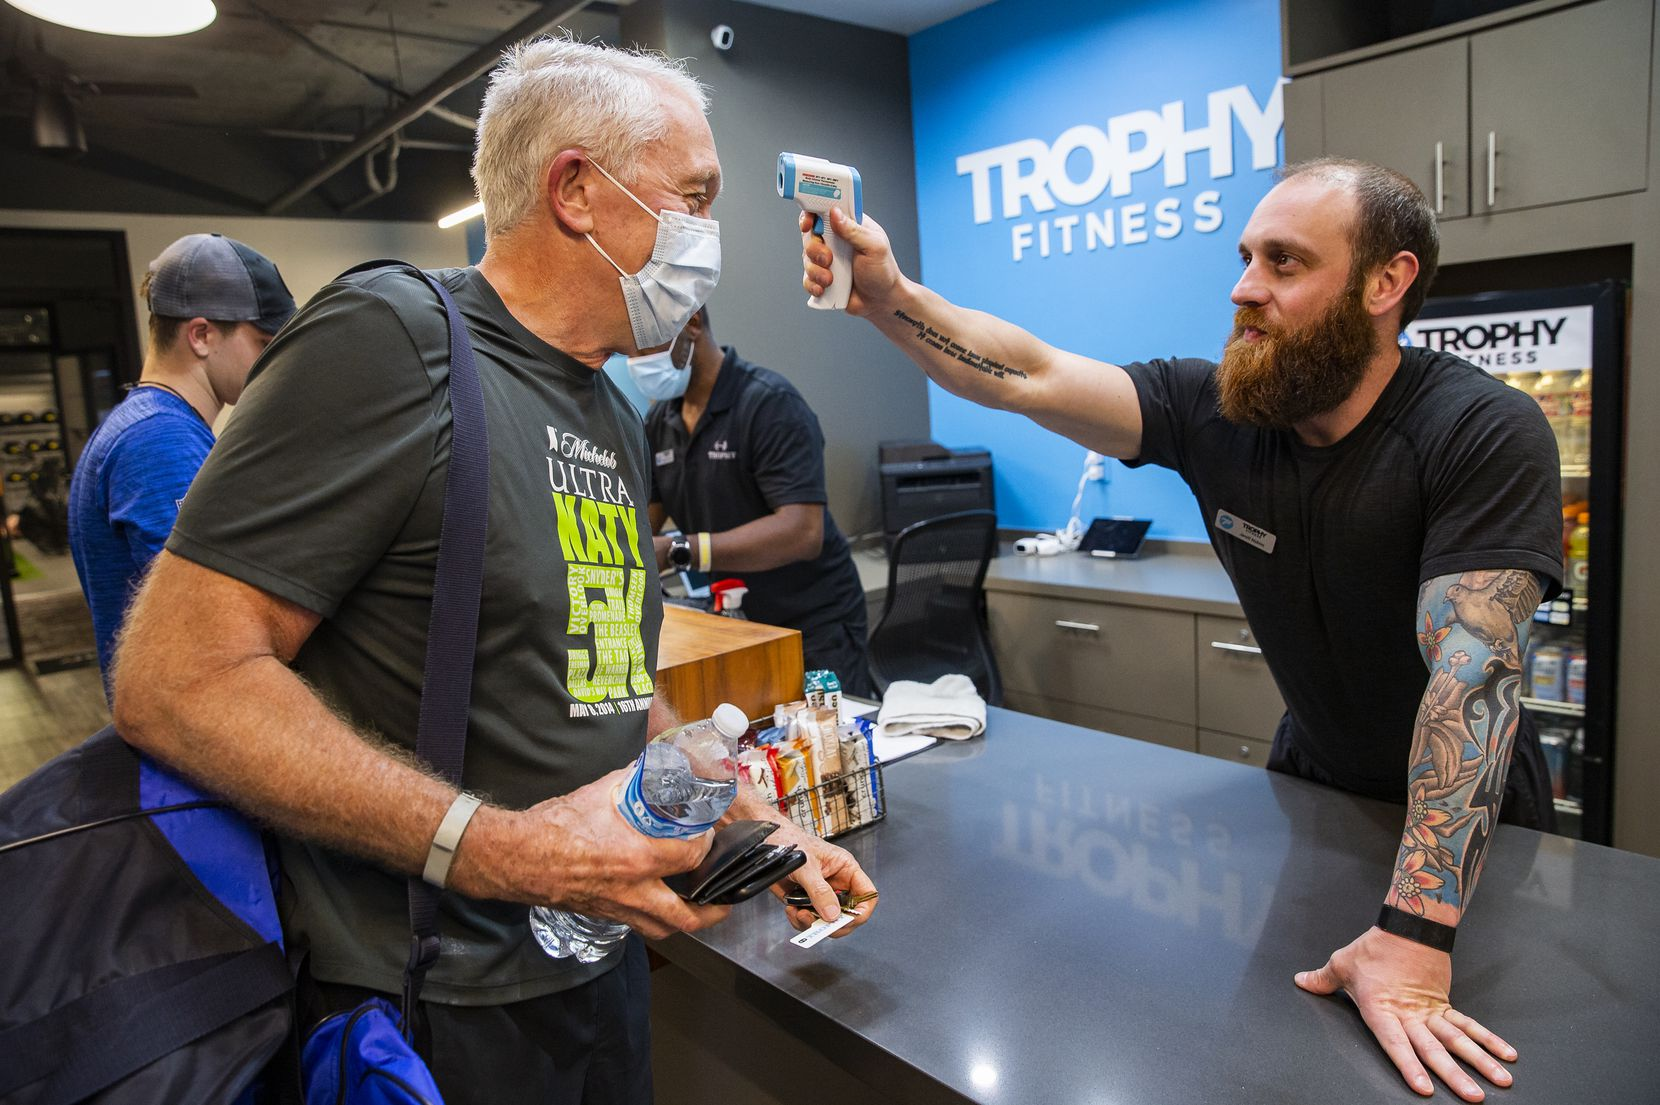 Client Durward Watson of Oak Lawn (left) has his temperature taken by a Trophy Fitness employee before being allowed to work out in the Uptown gym on May 18, 2020 in Dallas.